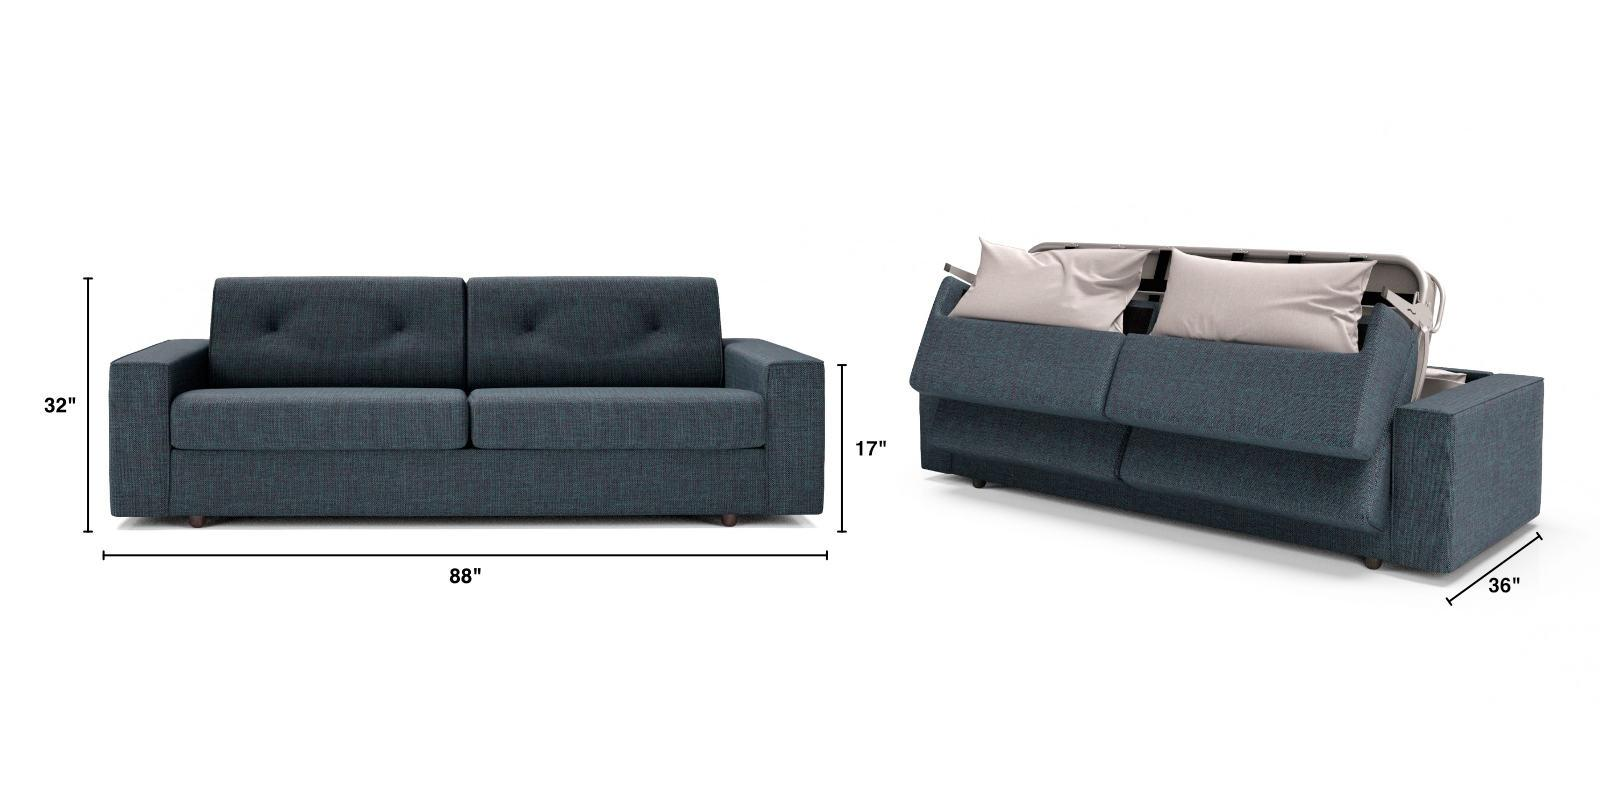 Fold Queen size sofa bed dimensions